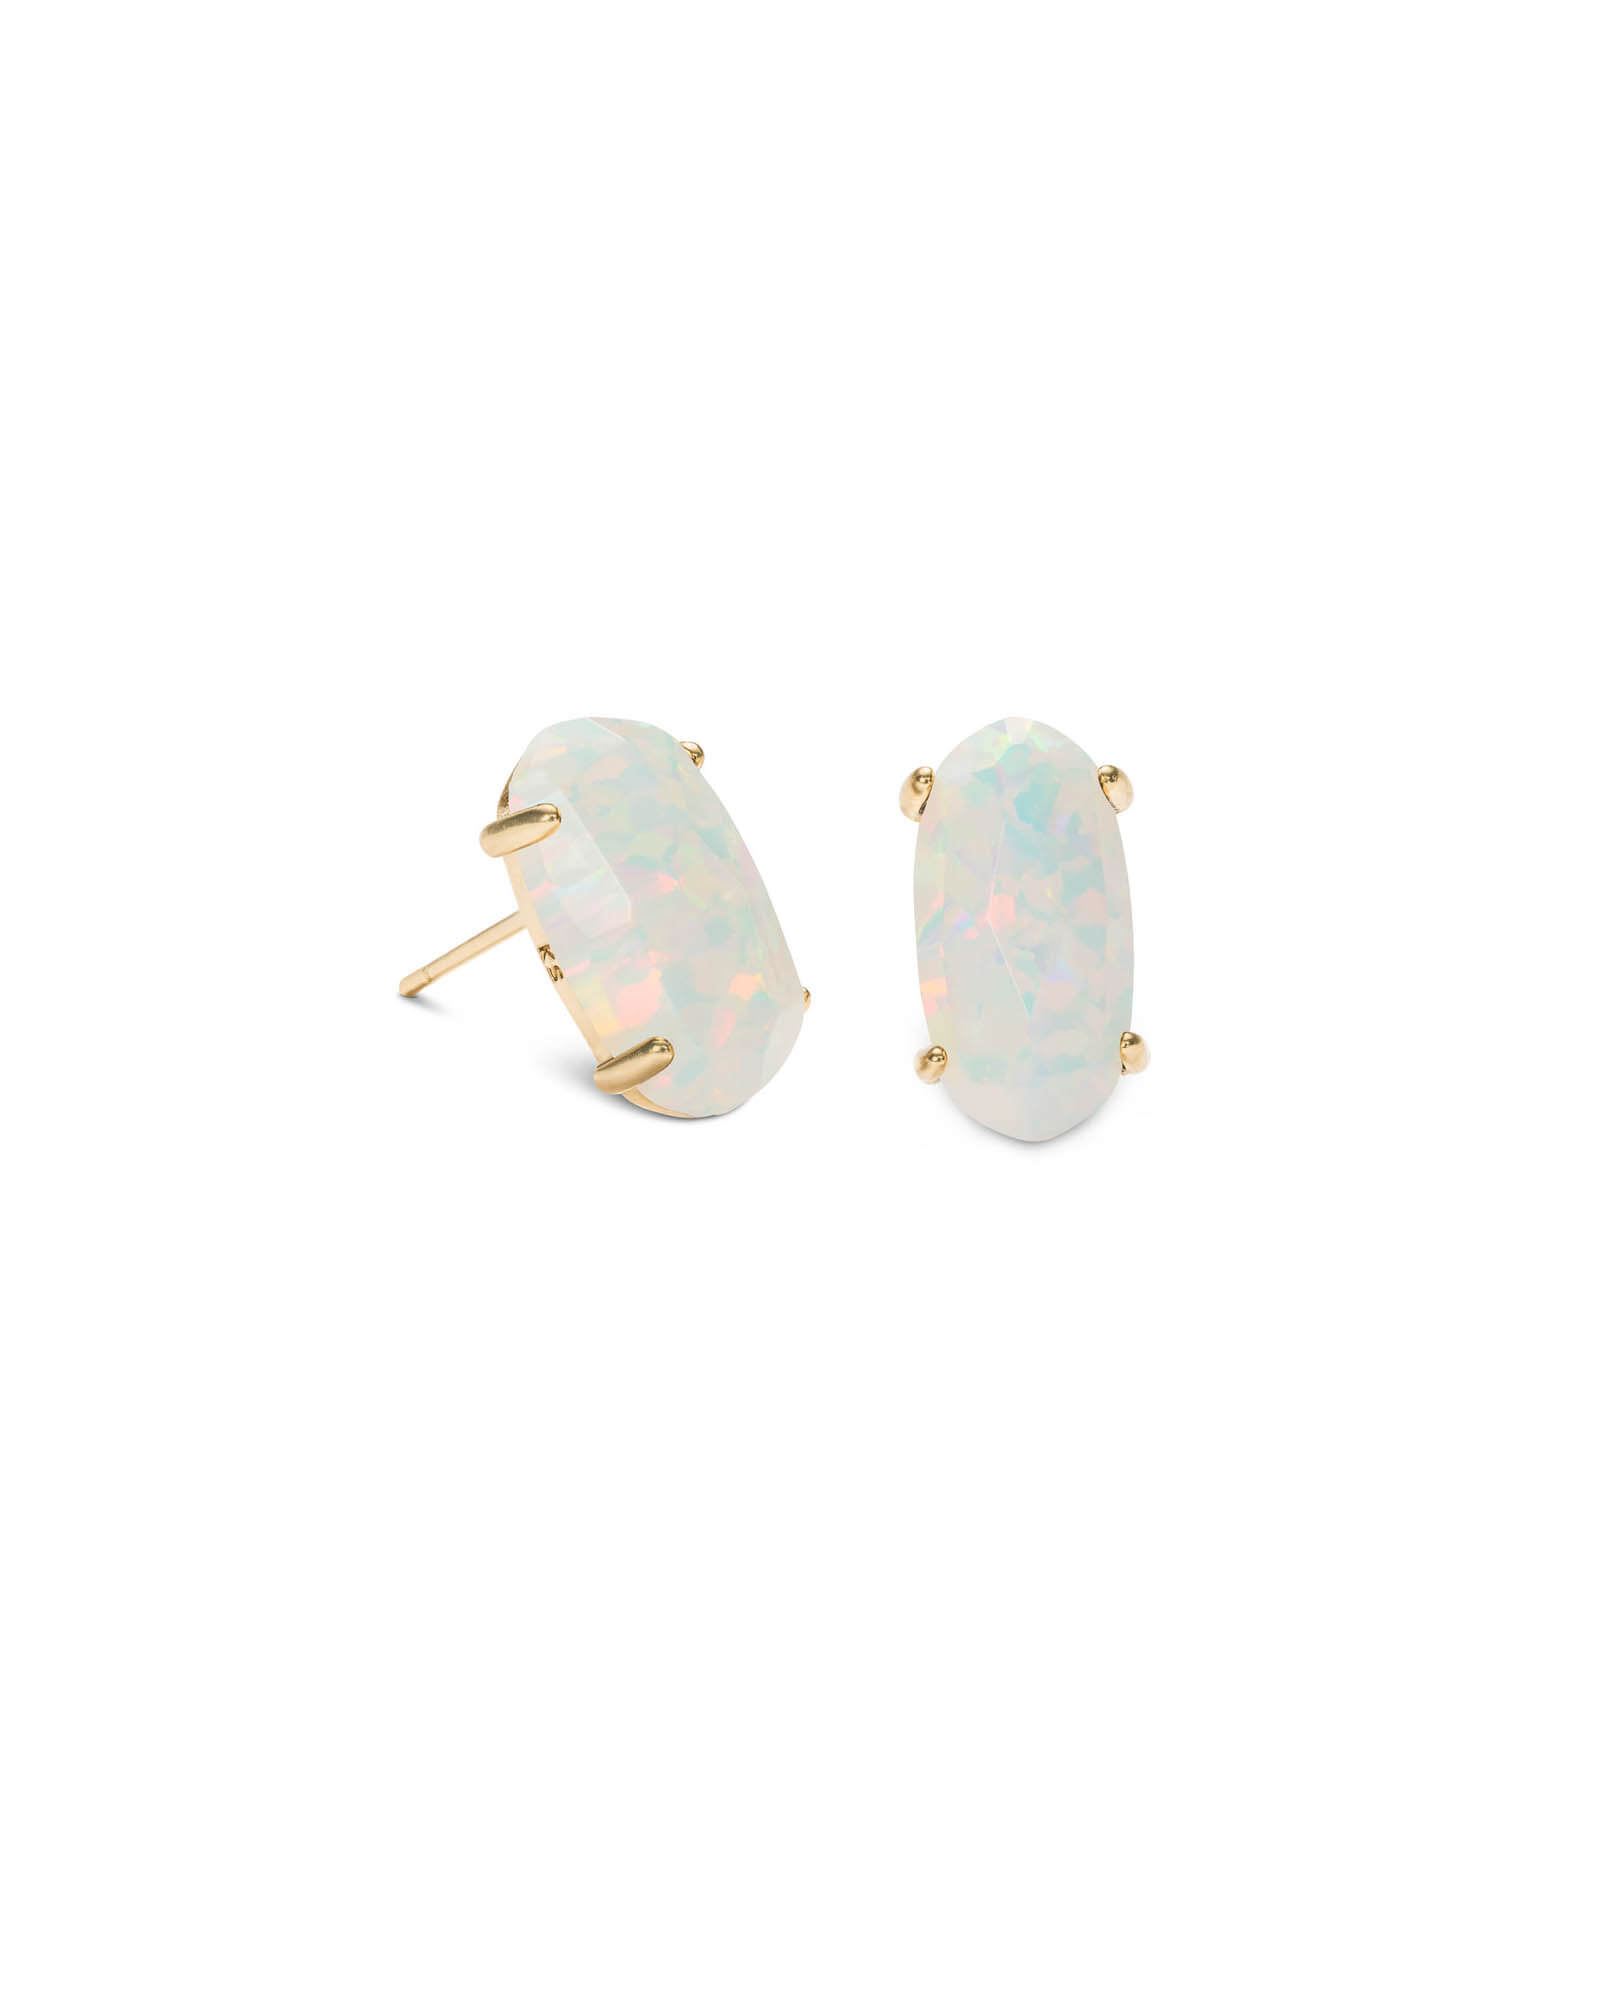 Betty Gold Stud Earrings in White Kyocera Opal